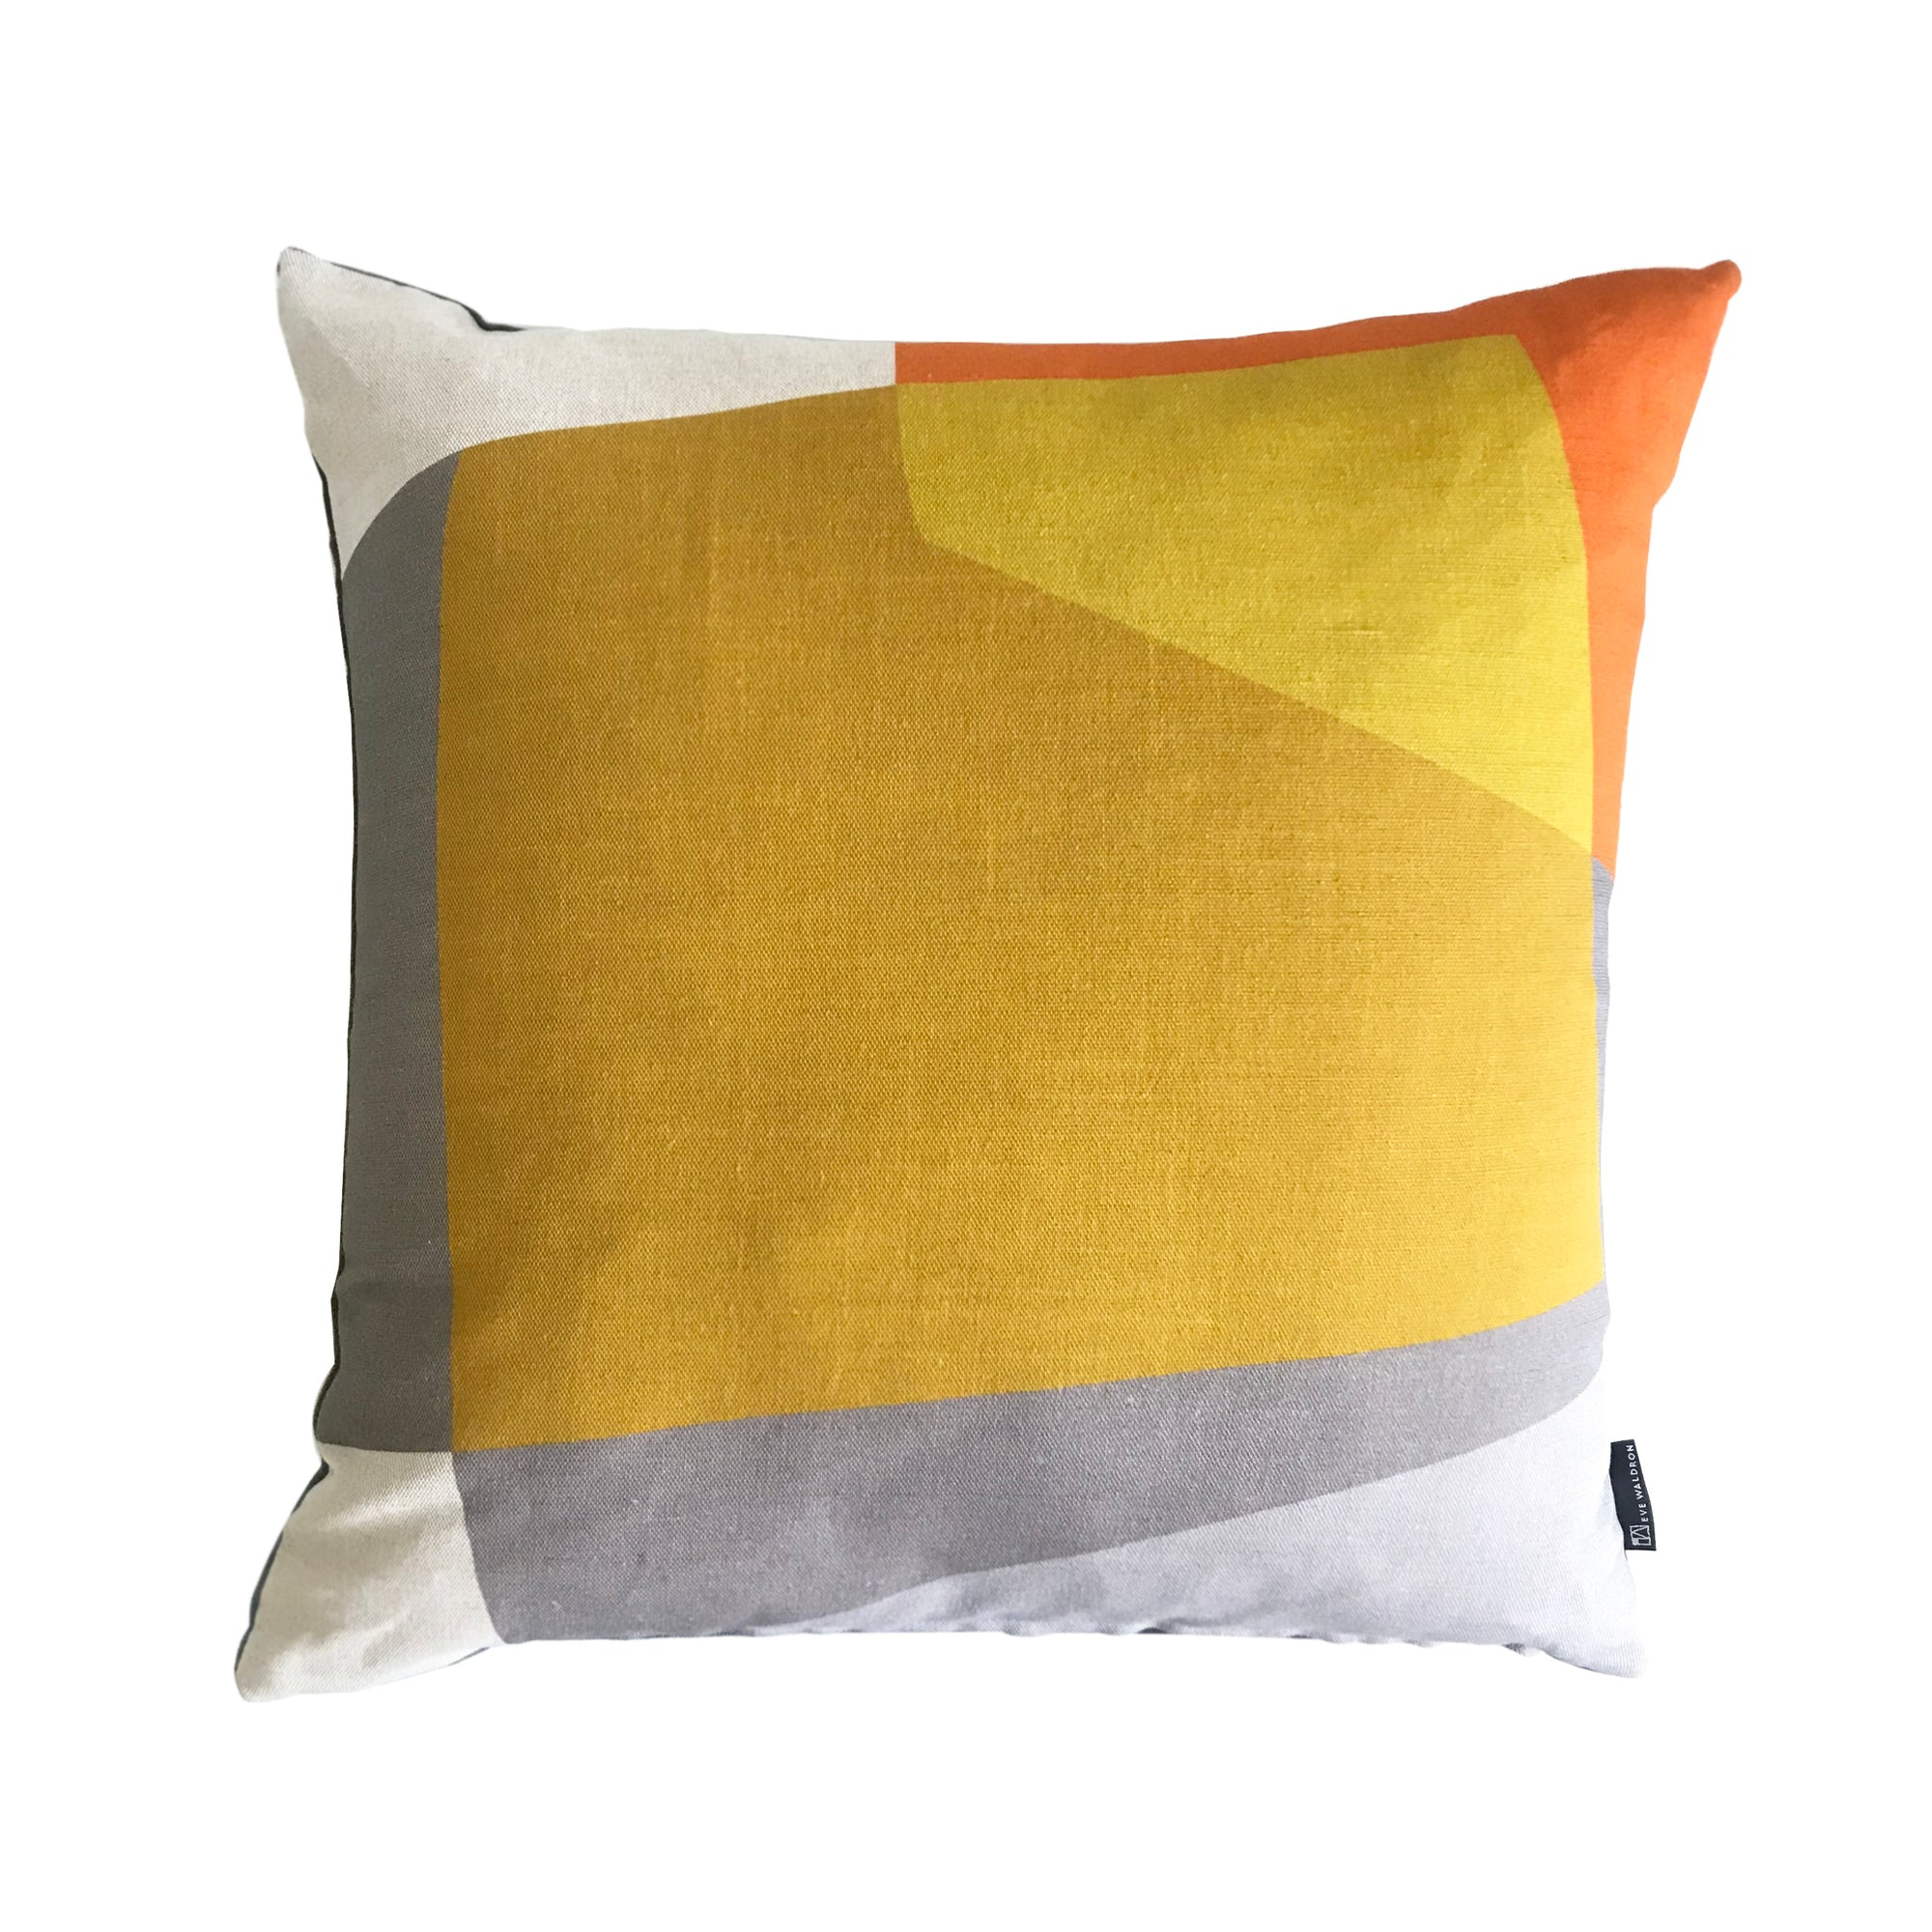 Eve Waldron Design Office Cushion Gold Windows 500 x 500mm